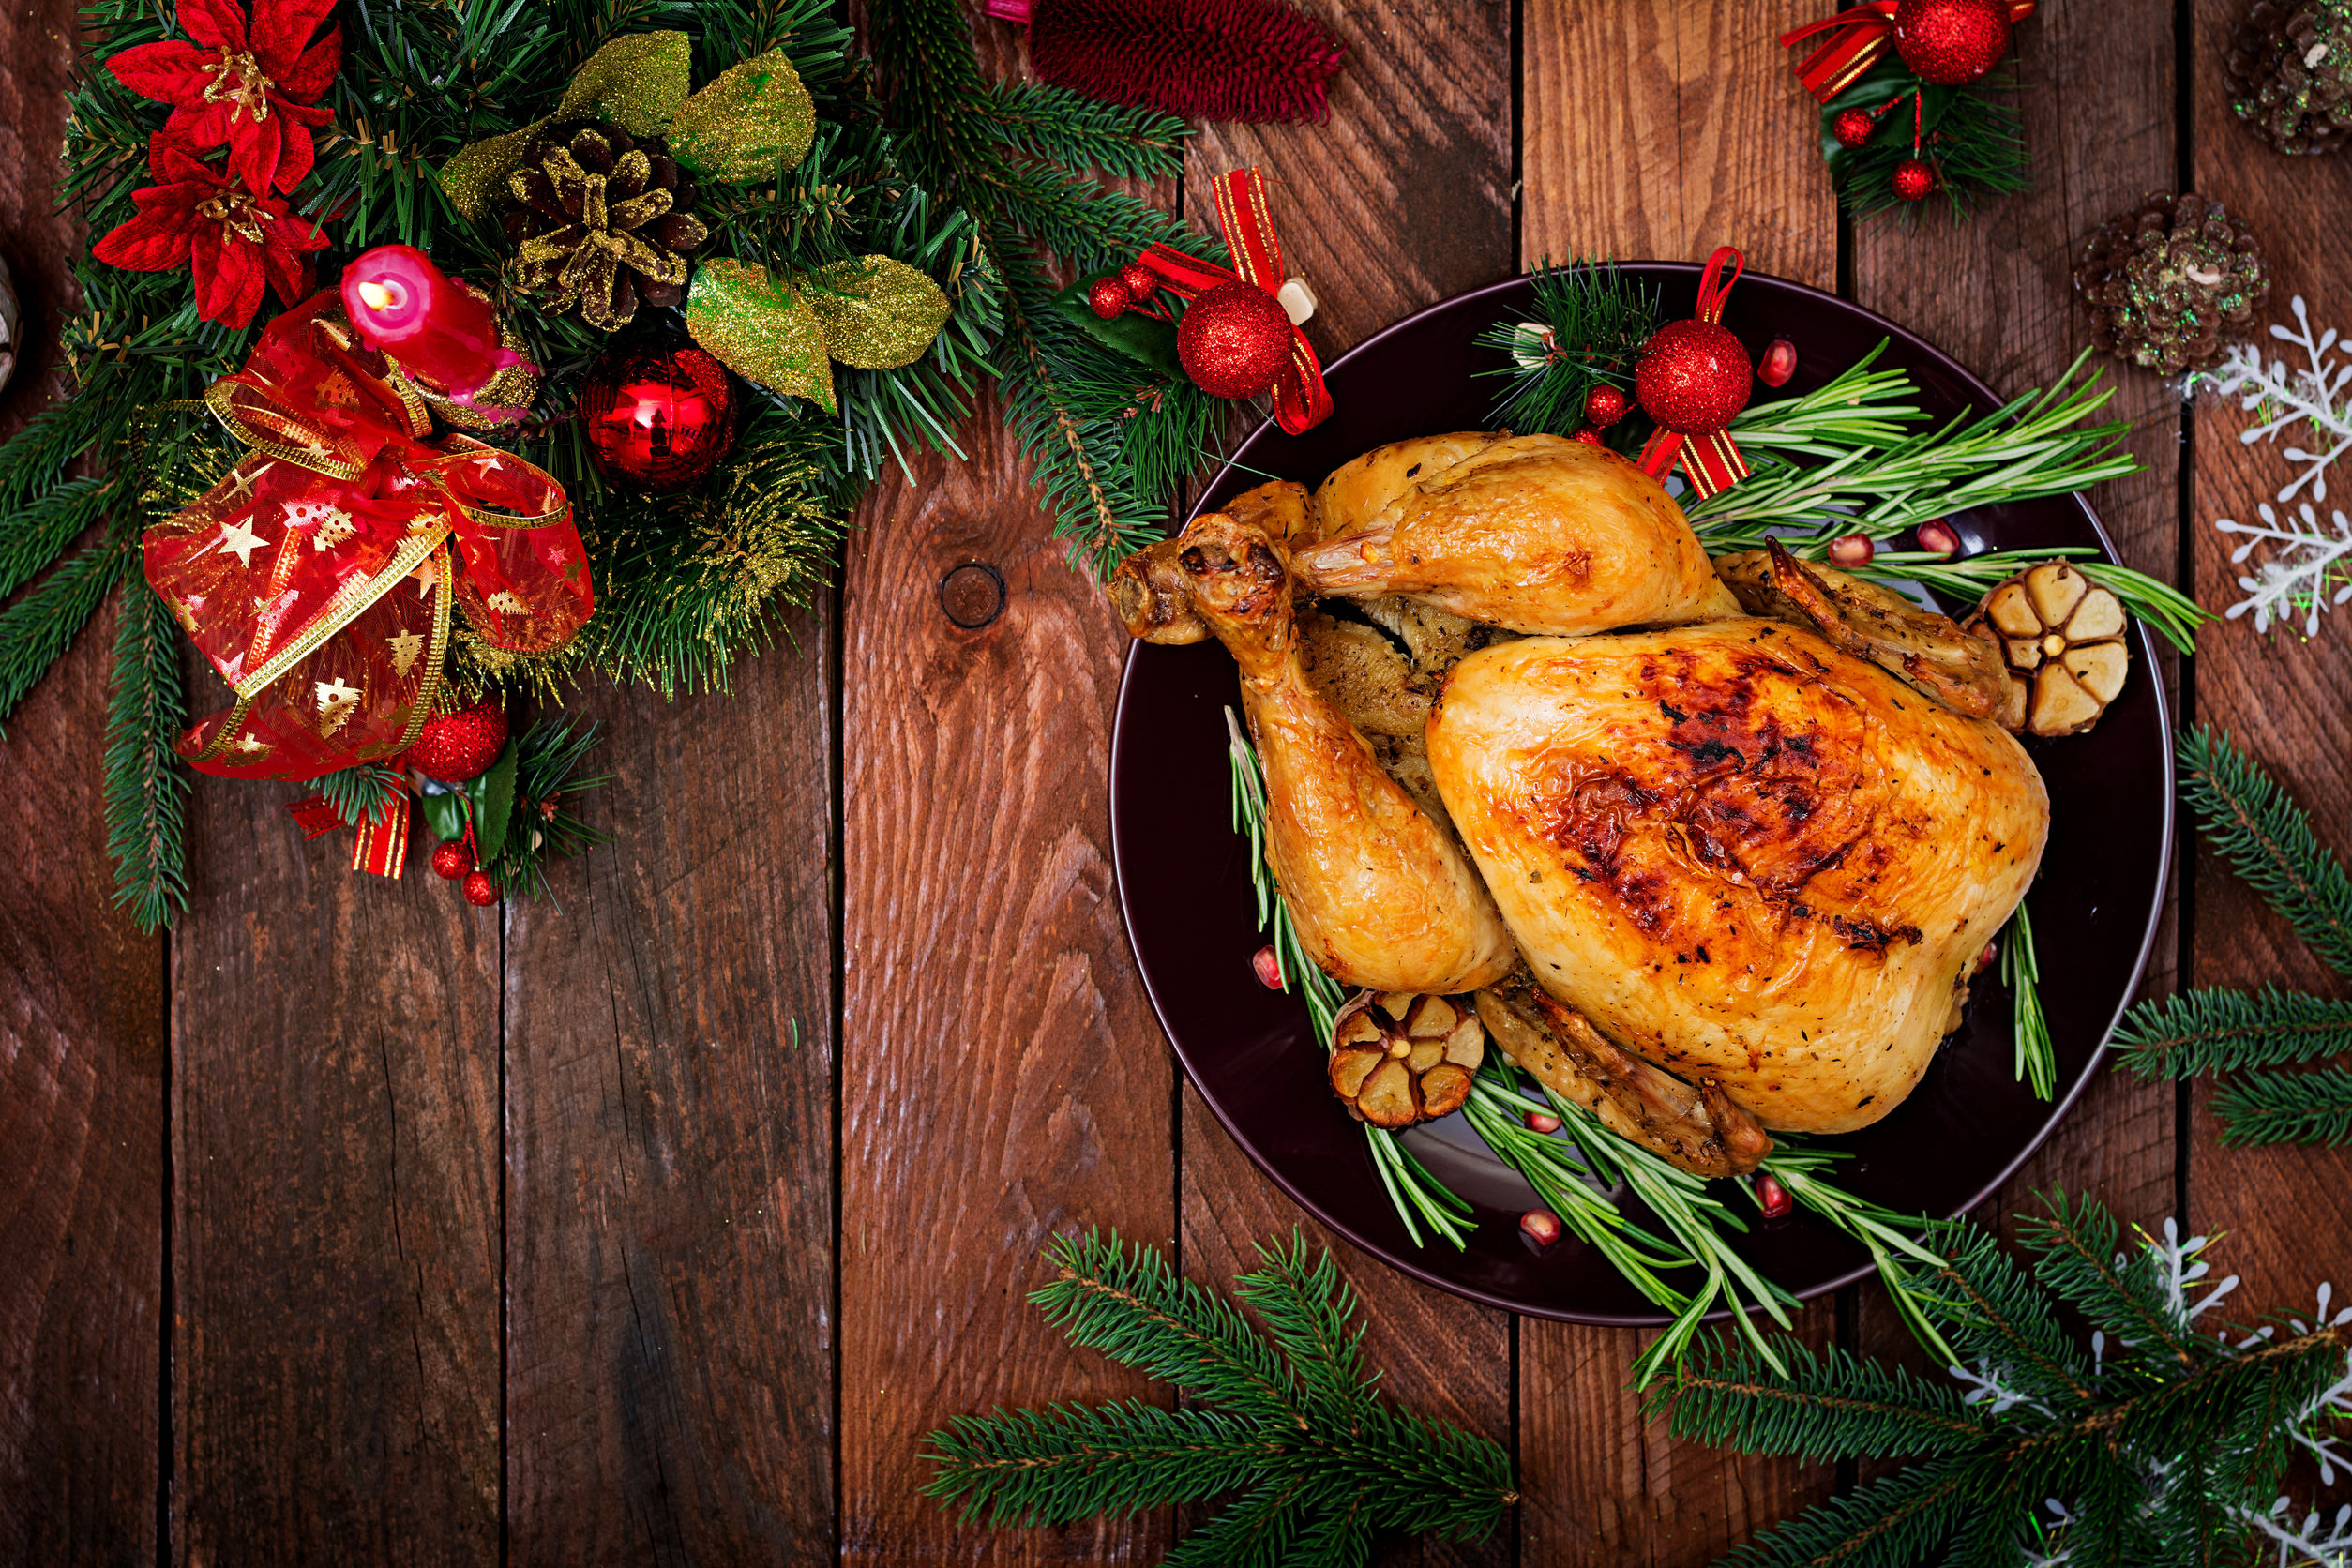 Roast turkey garnished and presented on wooden top with festive garland